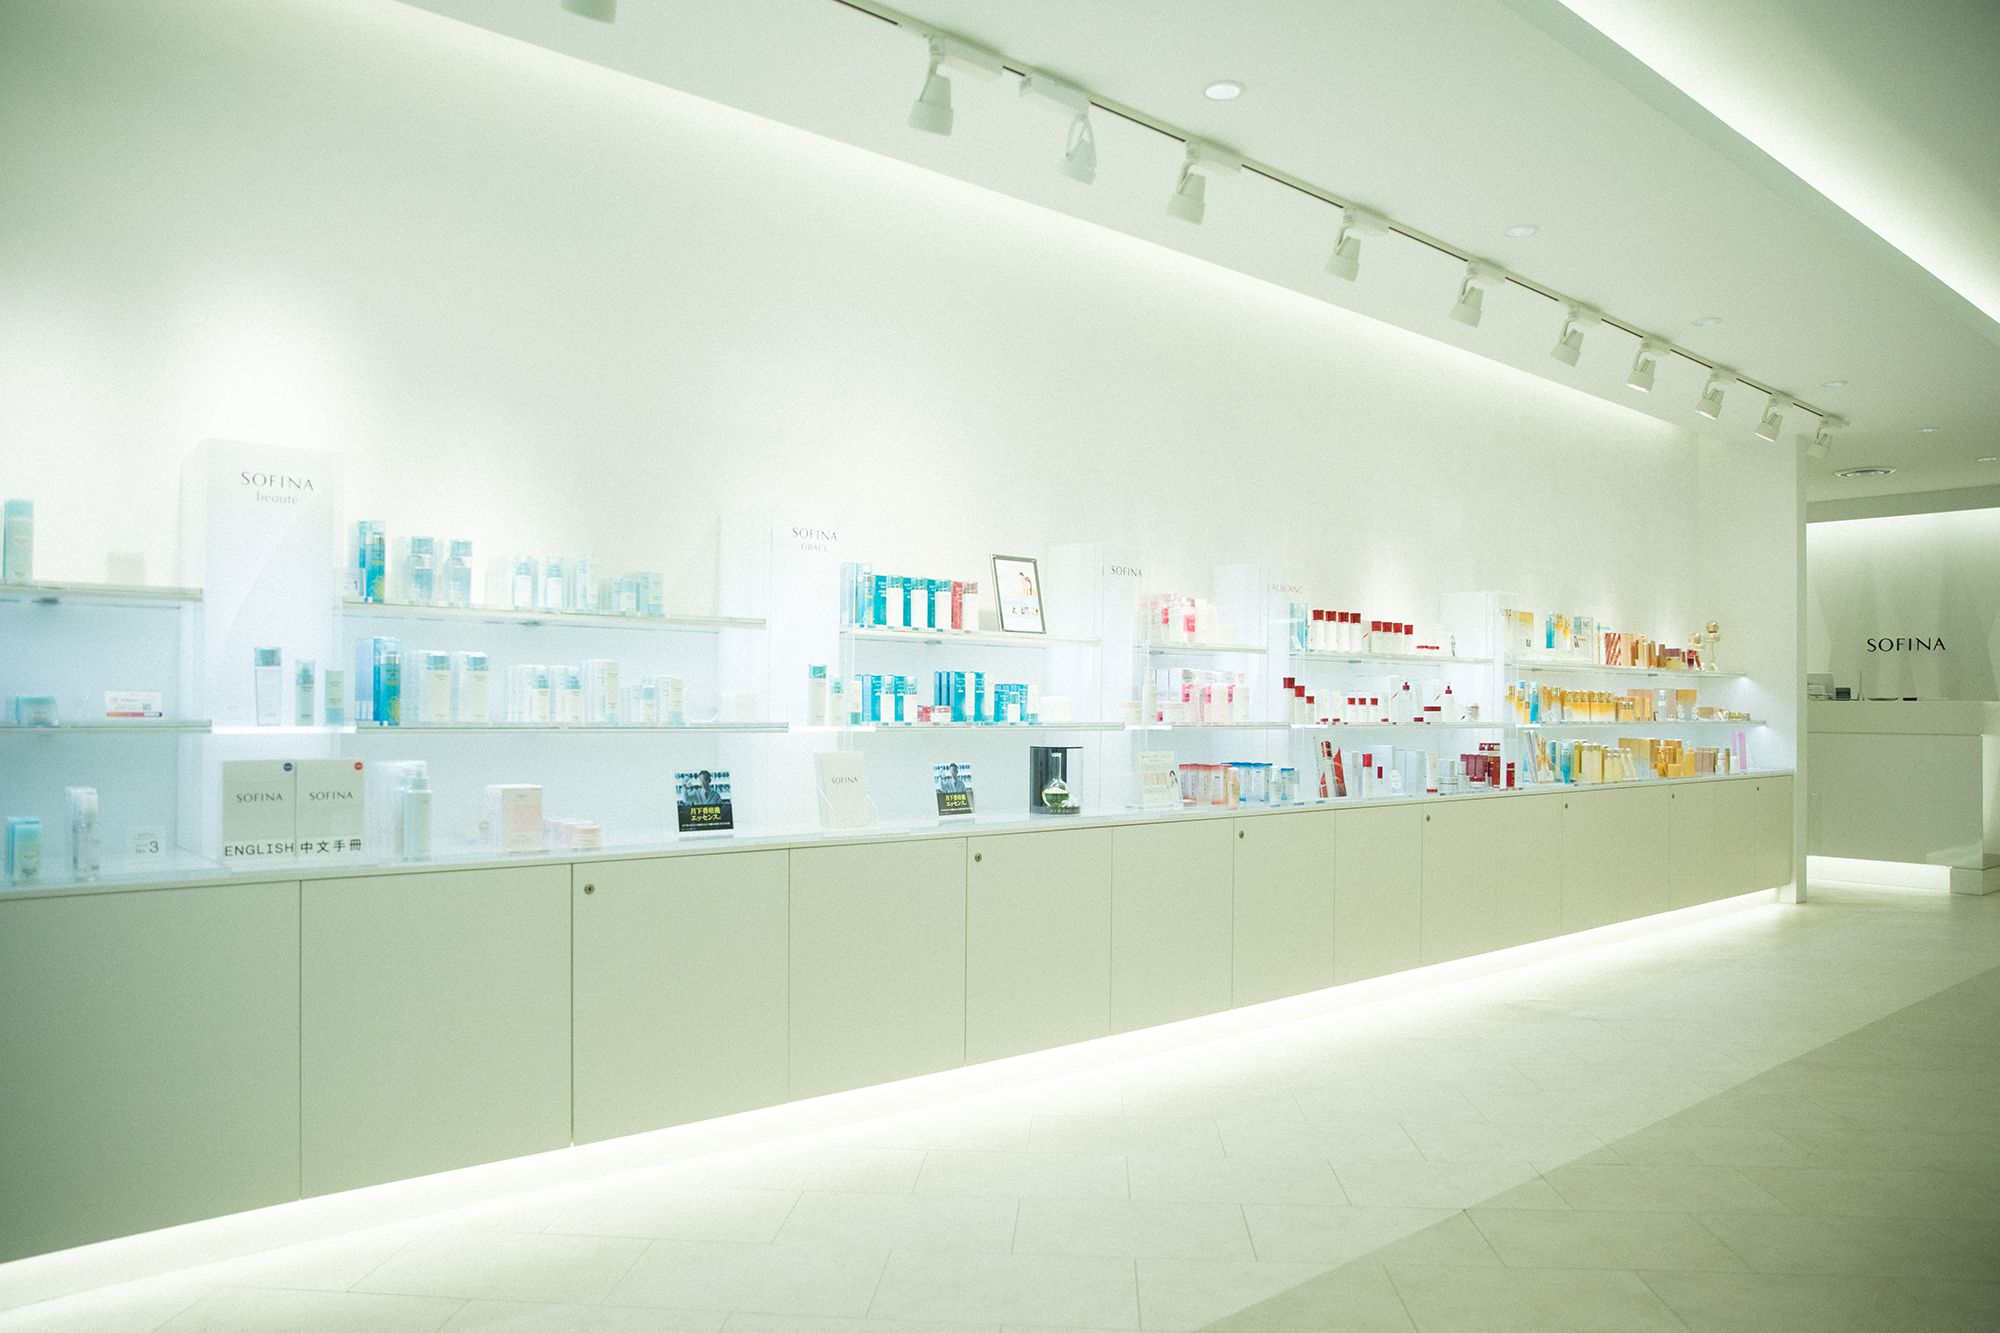 SOFINA products can be purchased at Ginza.